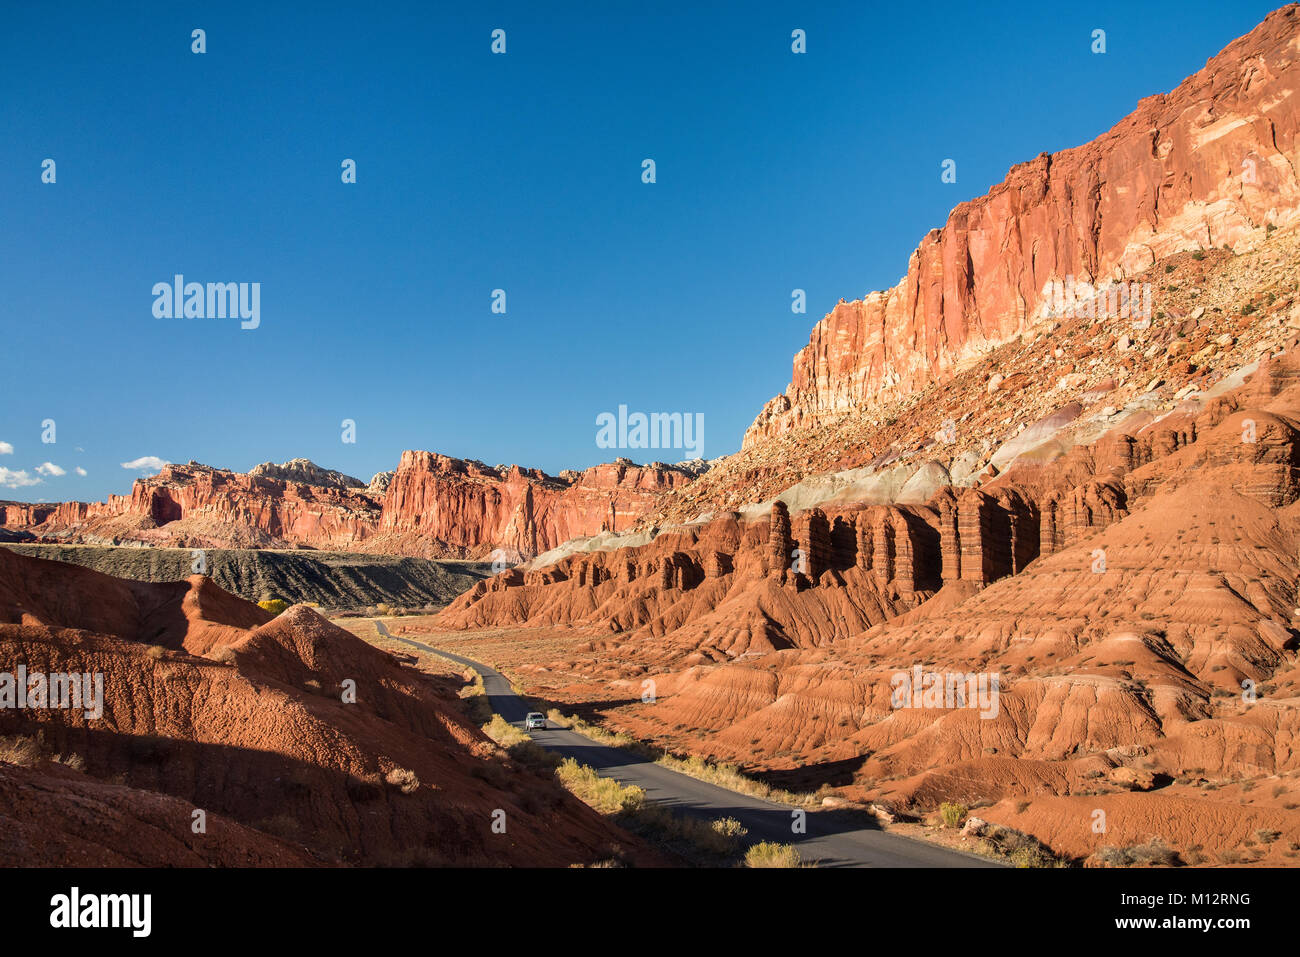 Scenic Drive and the layered sandstone escarpment of Waterpocket Fold, Capitol Reef National Park, Utah. - Stock Image